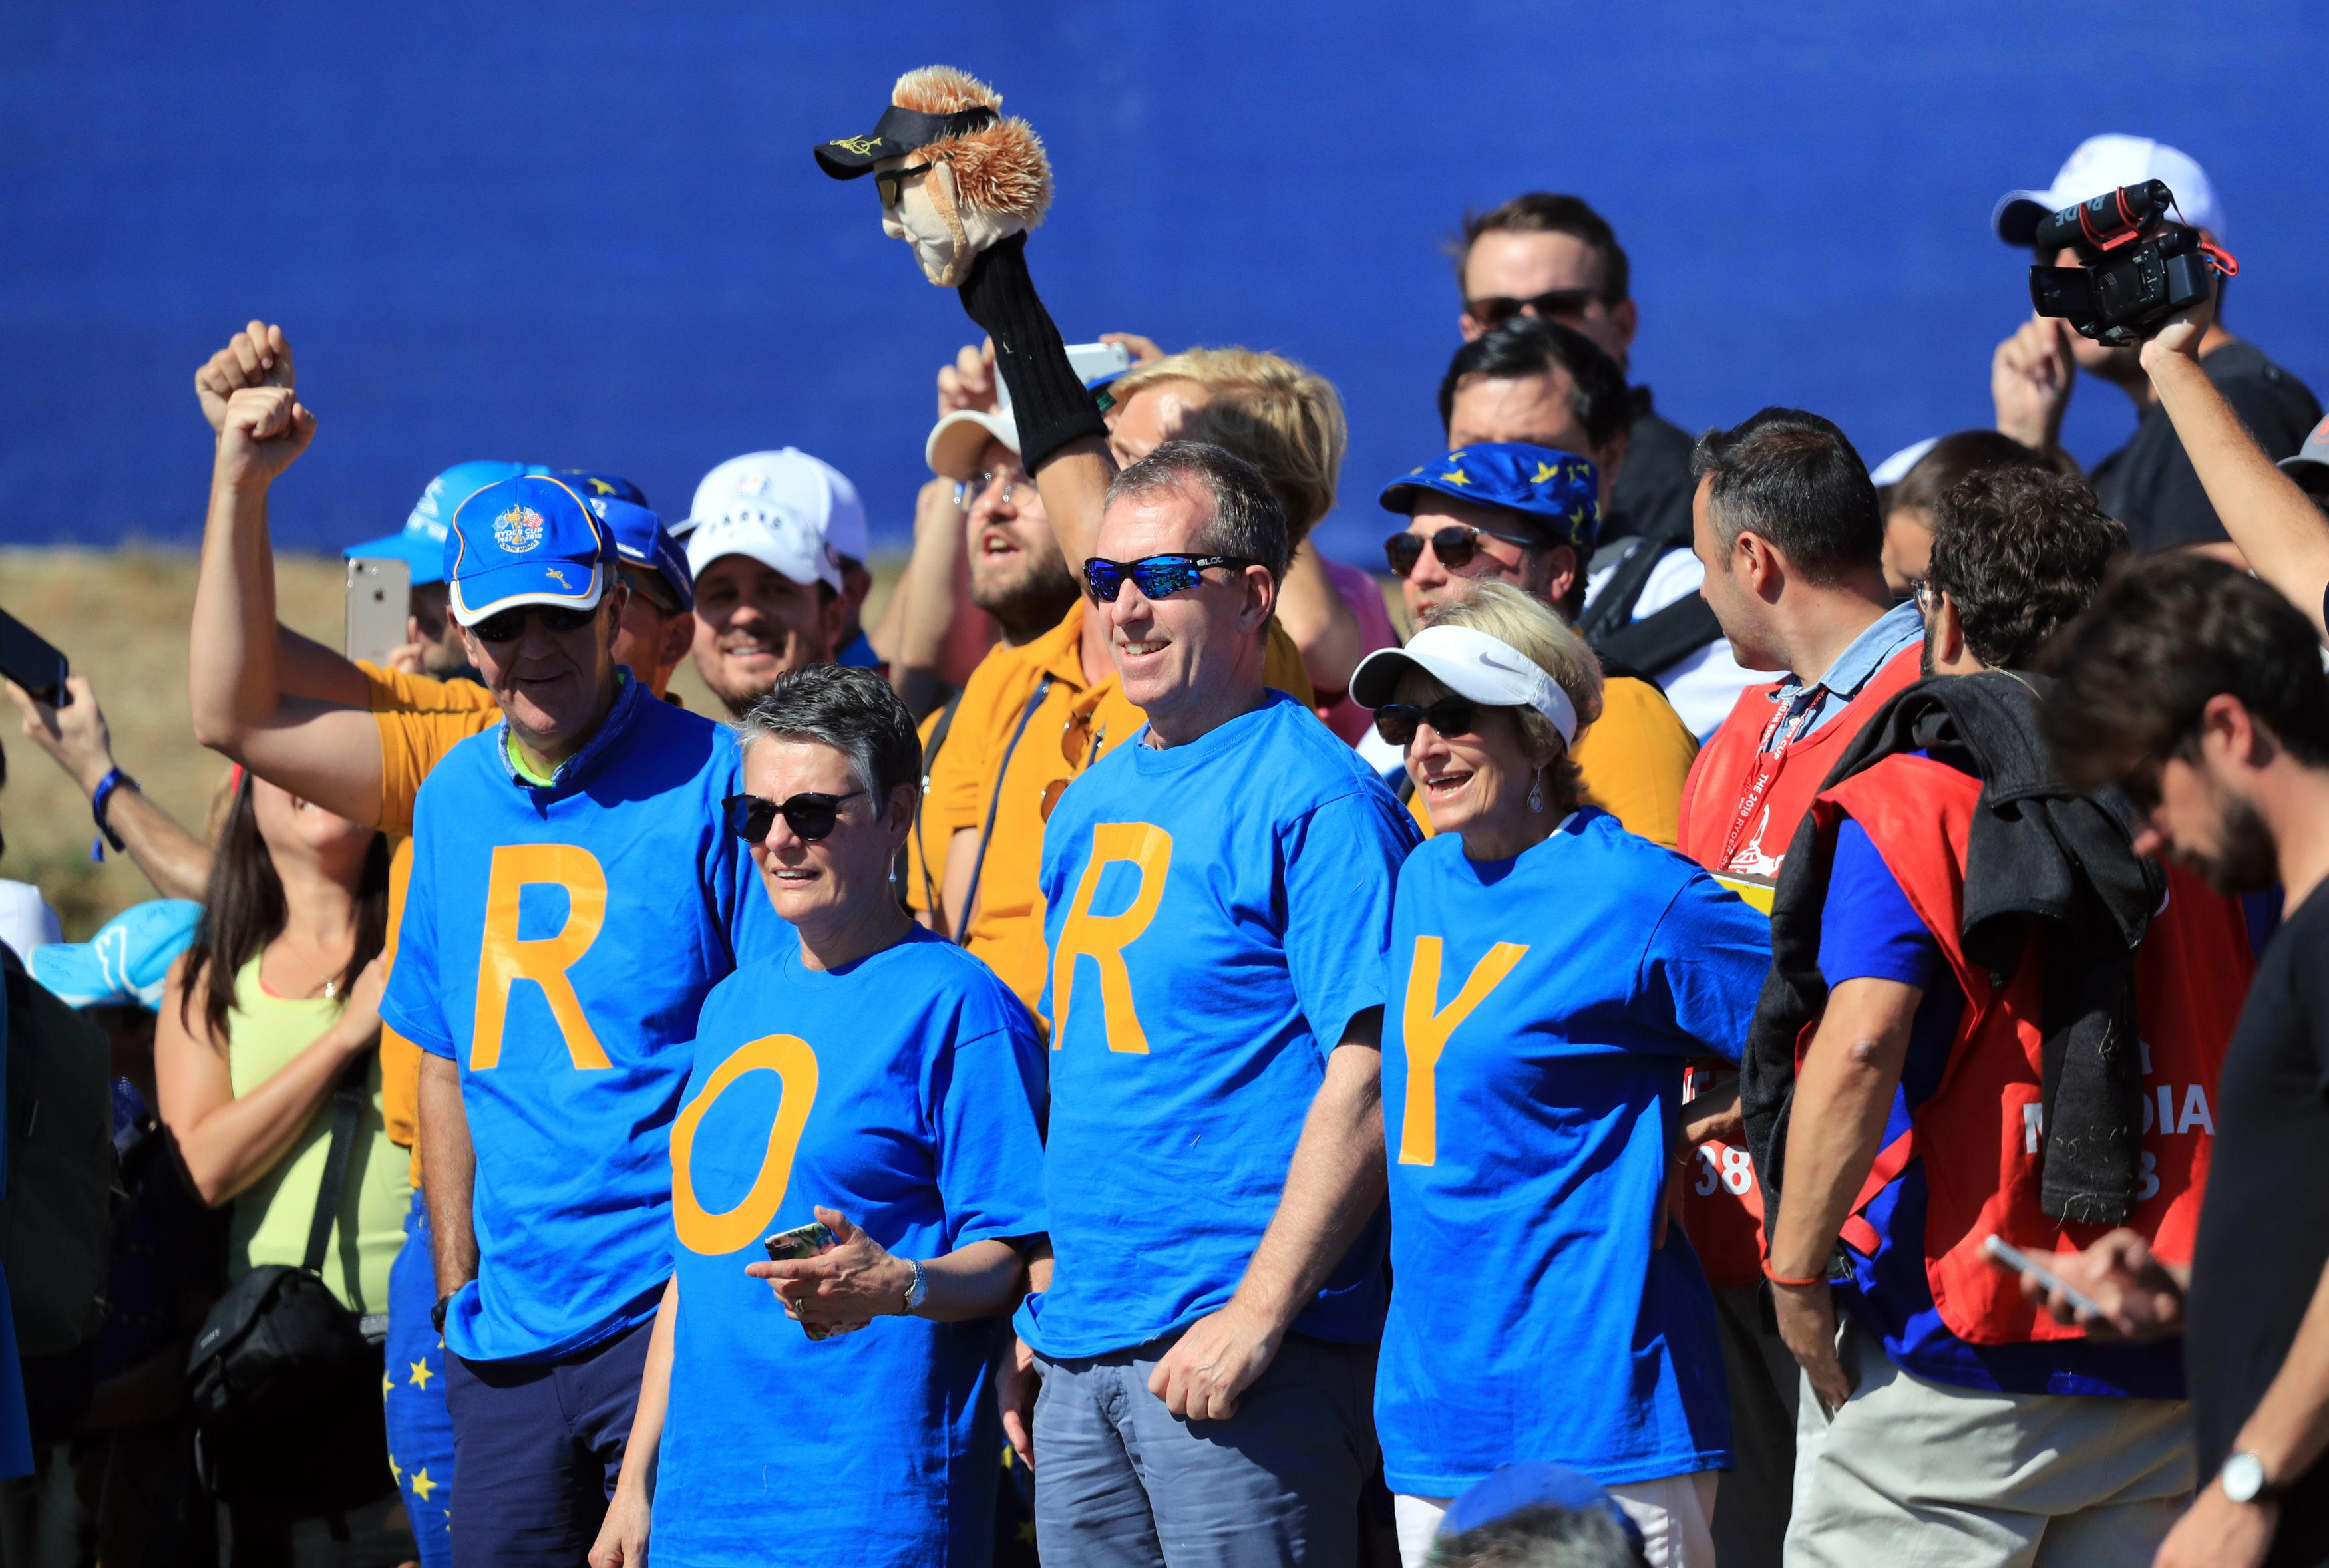 Supporters cheer on four-time major champion Rory McIlroy at Le Golf National